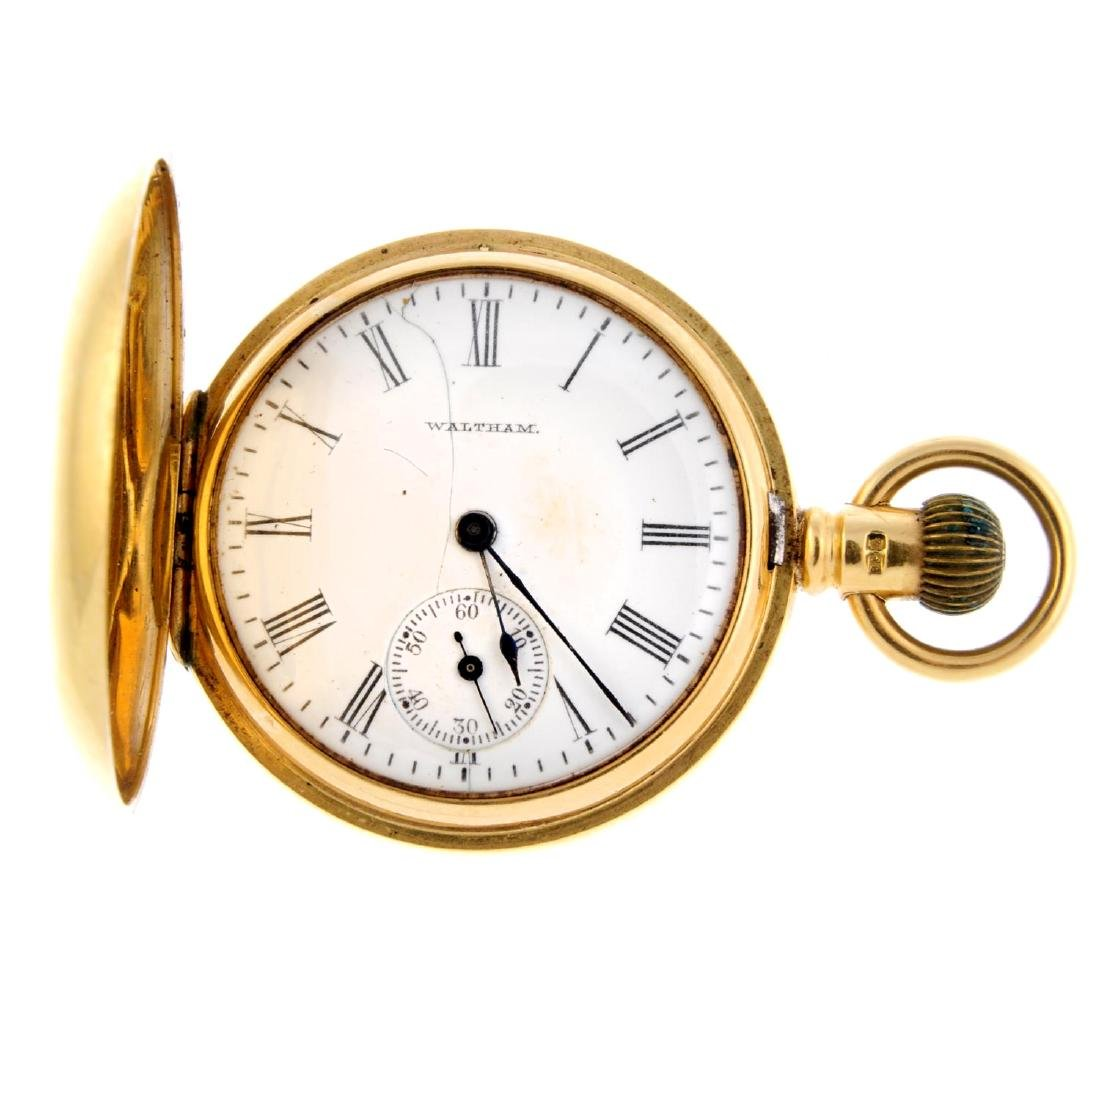 A full hunter pocket watch by Waltham. 18ct yellow gold